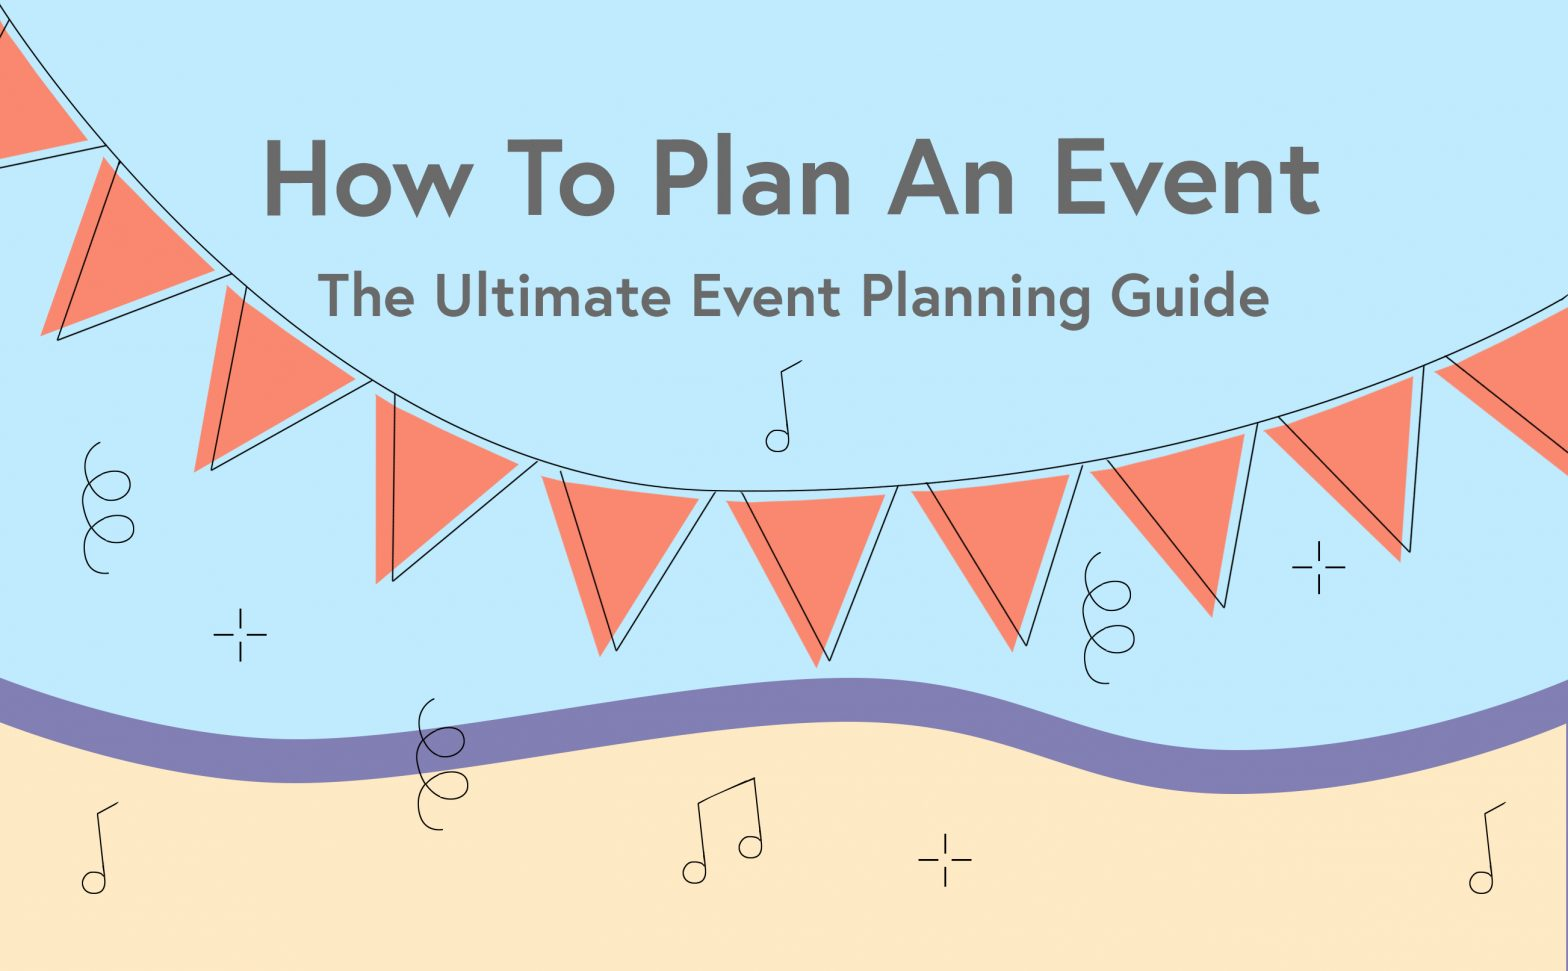 Plan events creatively with these tips